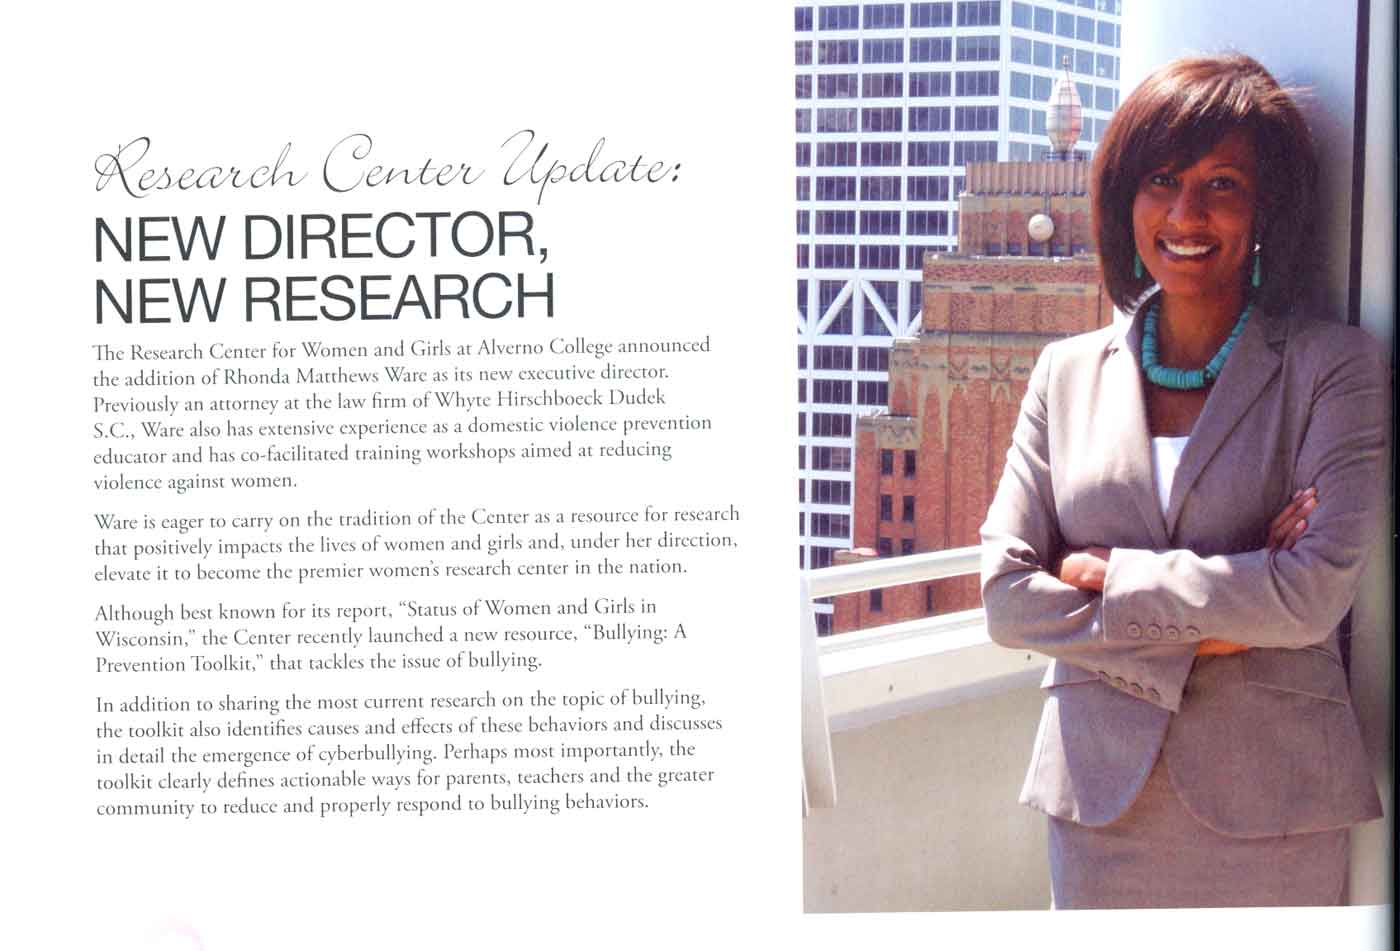 This is a photo and brief article from Alverno Magazine about Rhonda Matthews Ware's Fall 2011 appointment as Executive Director of Alverno's Reseach Center for Women and Girls